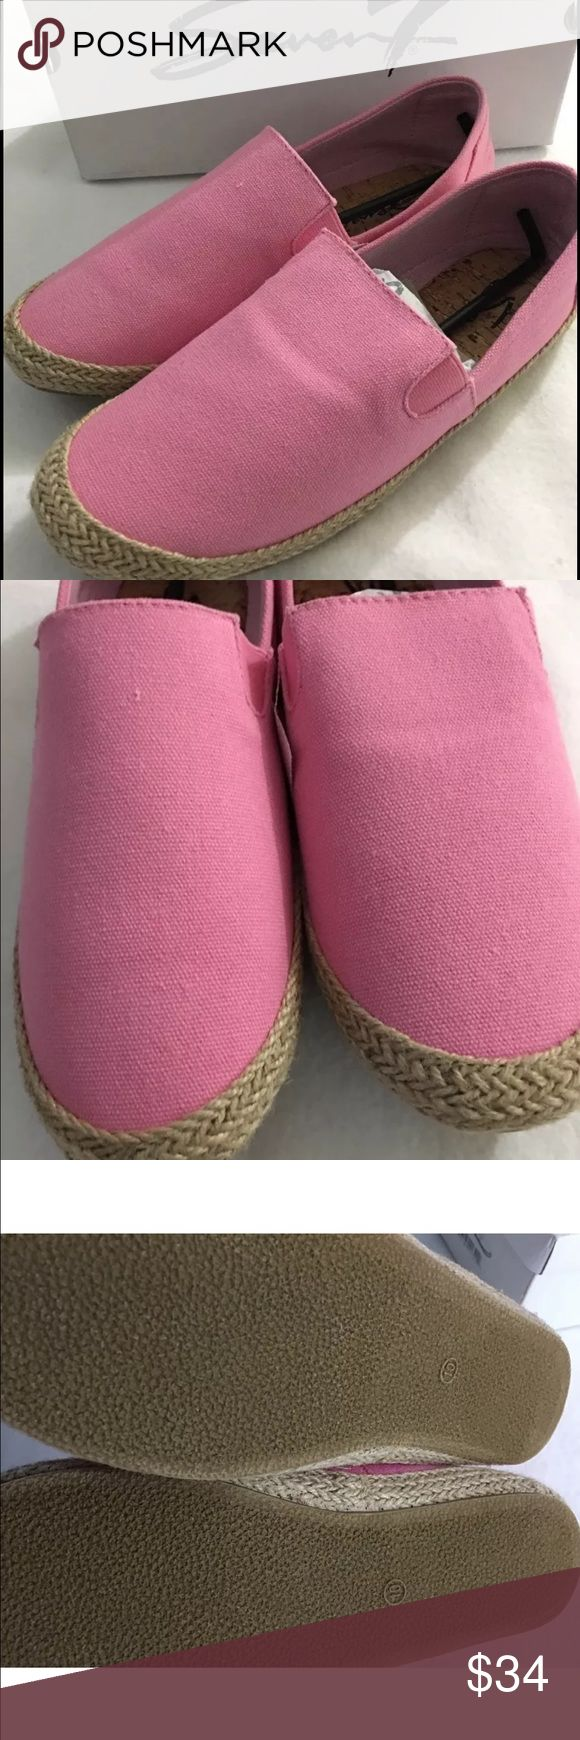 Seven7 Cape Code Espadrille Flats Slip On Shoes 10 Seven7 Cape Cod Canvas Espadrille Deck Shoes - Womens 10 - Bubblegum Pink with nonslip soles and jute rope trim - comfortable slip on - New in box Seven7 Shoes Flats & Loafers